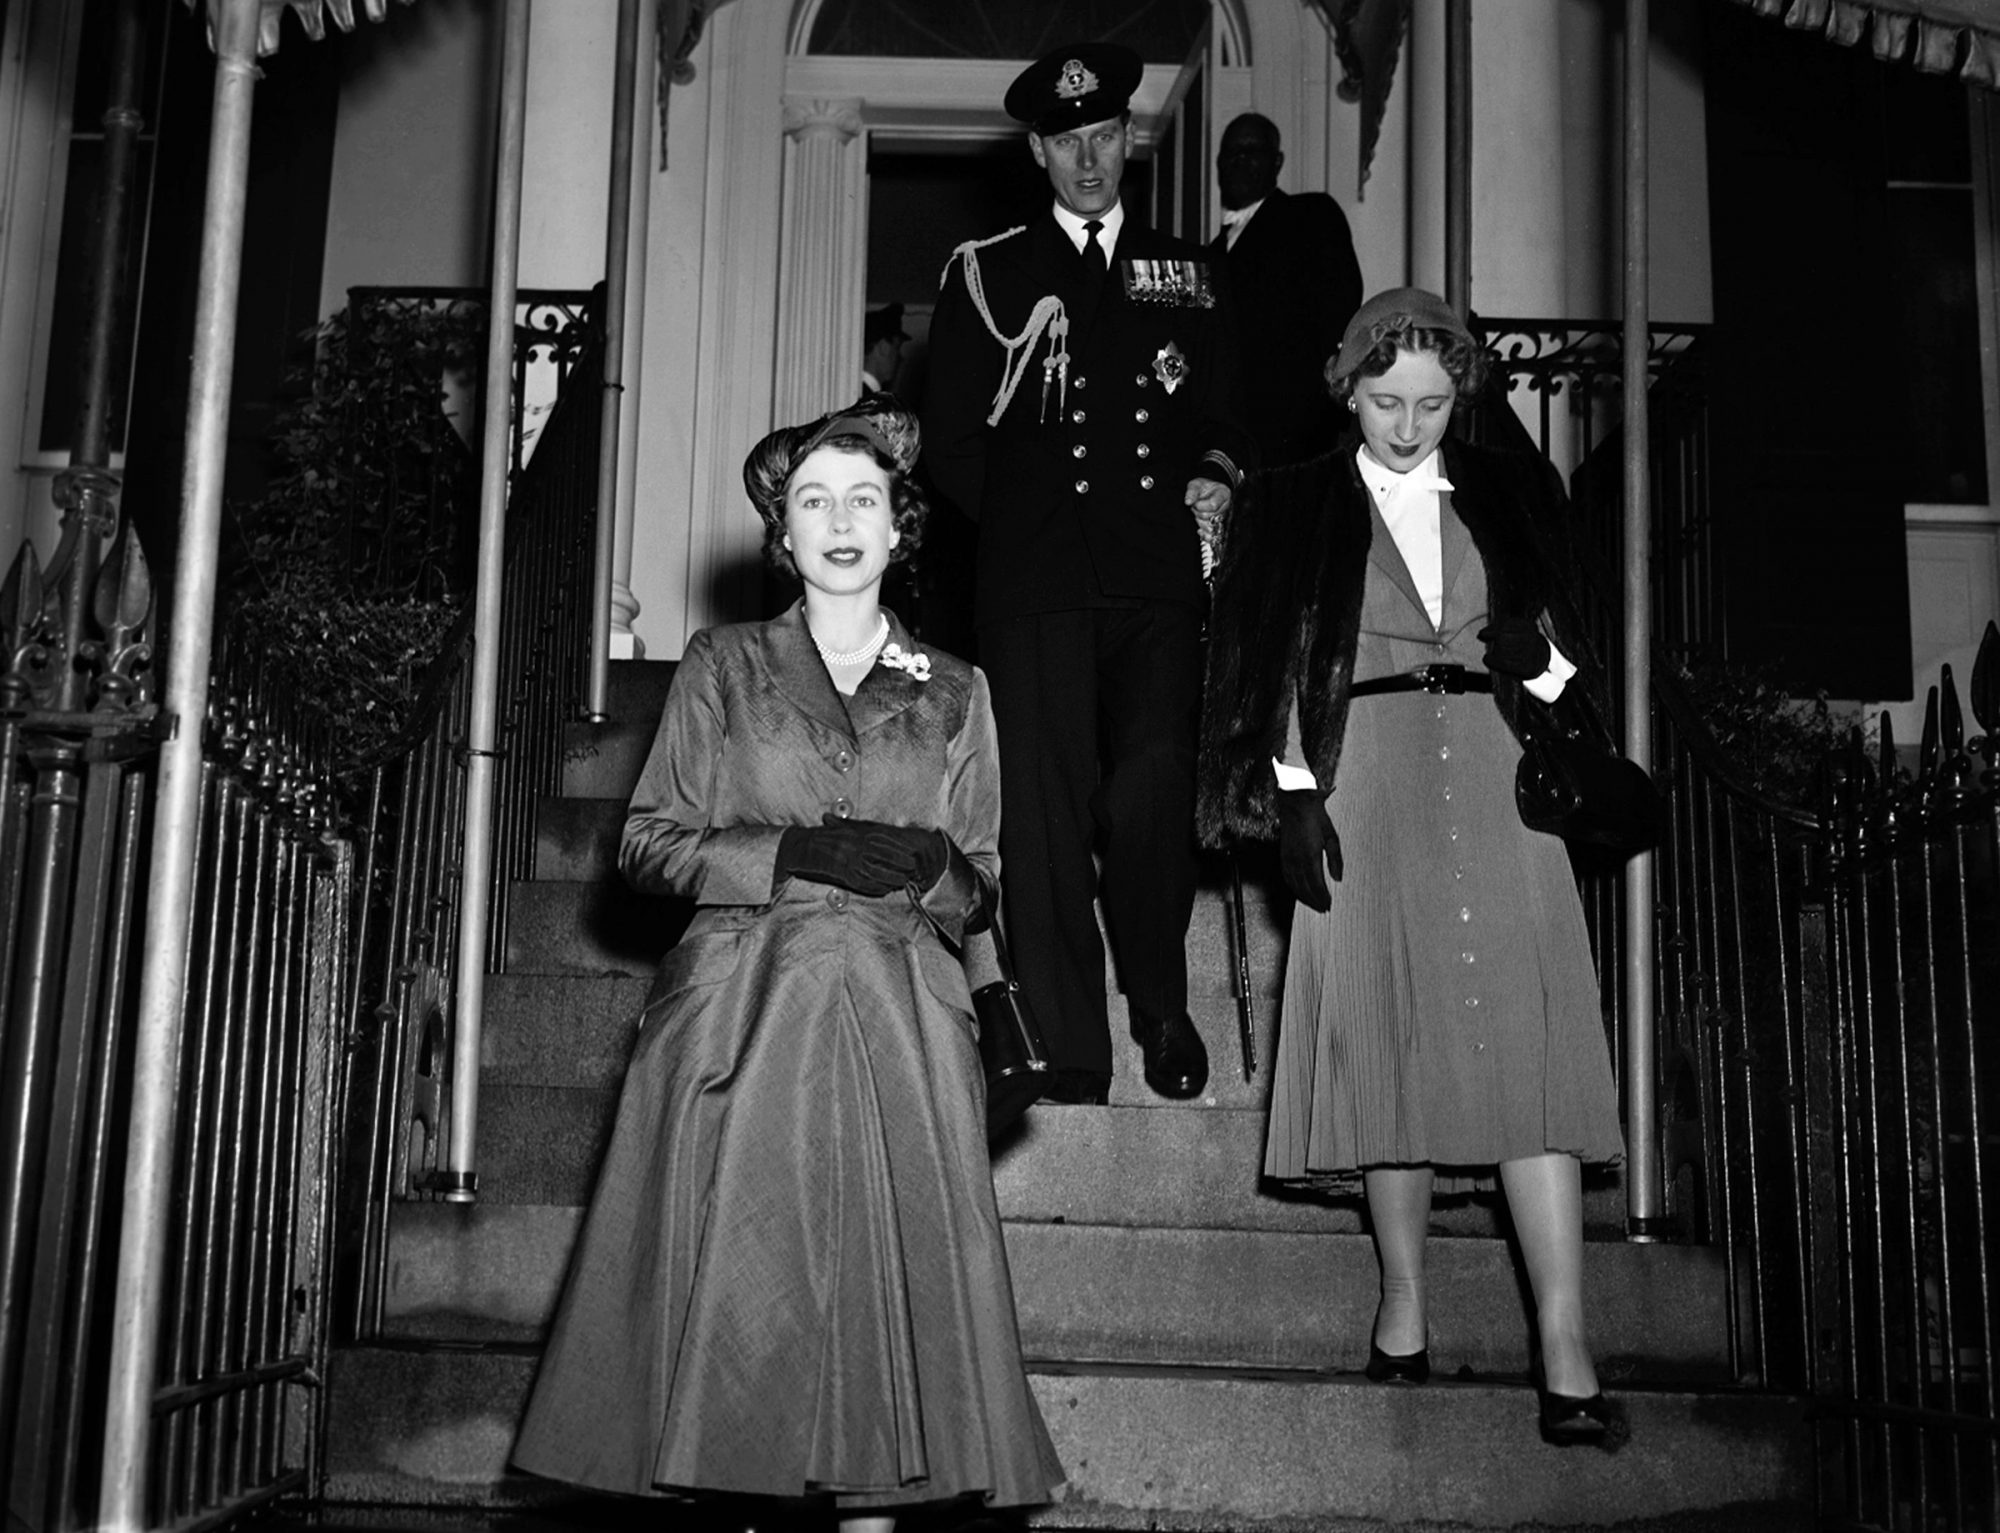 Britain's Princess Elizabeth leads the Duke of Edinburgh and Miss Margaret Truman, daughter of the president, Harry Truman, as they leave Blair House, for Mount Vernon in Virginia